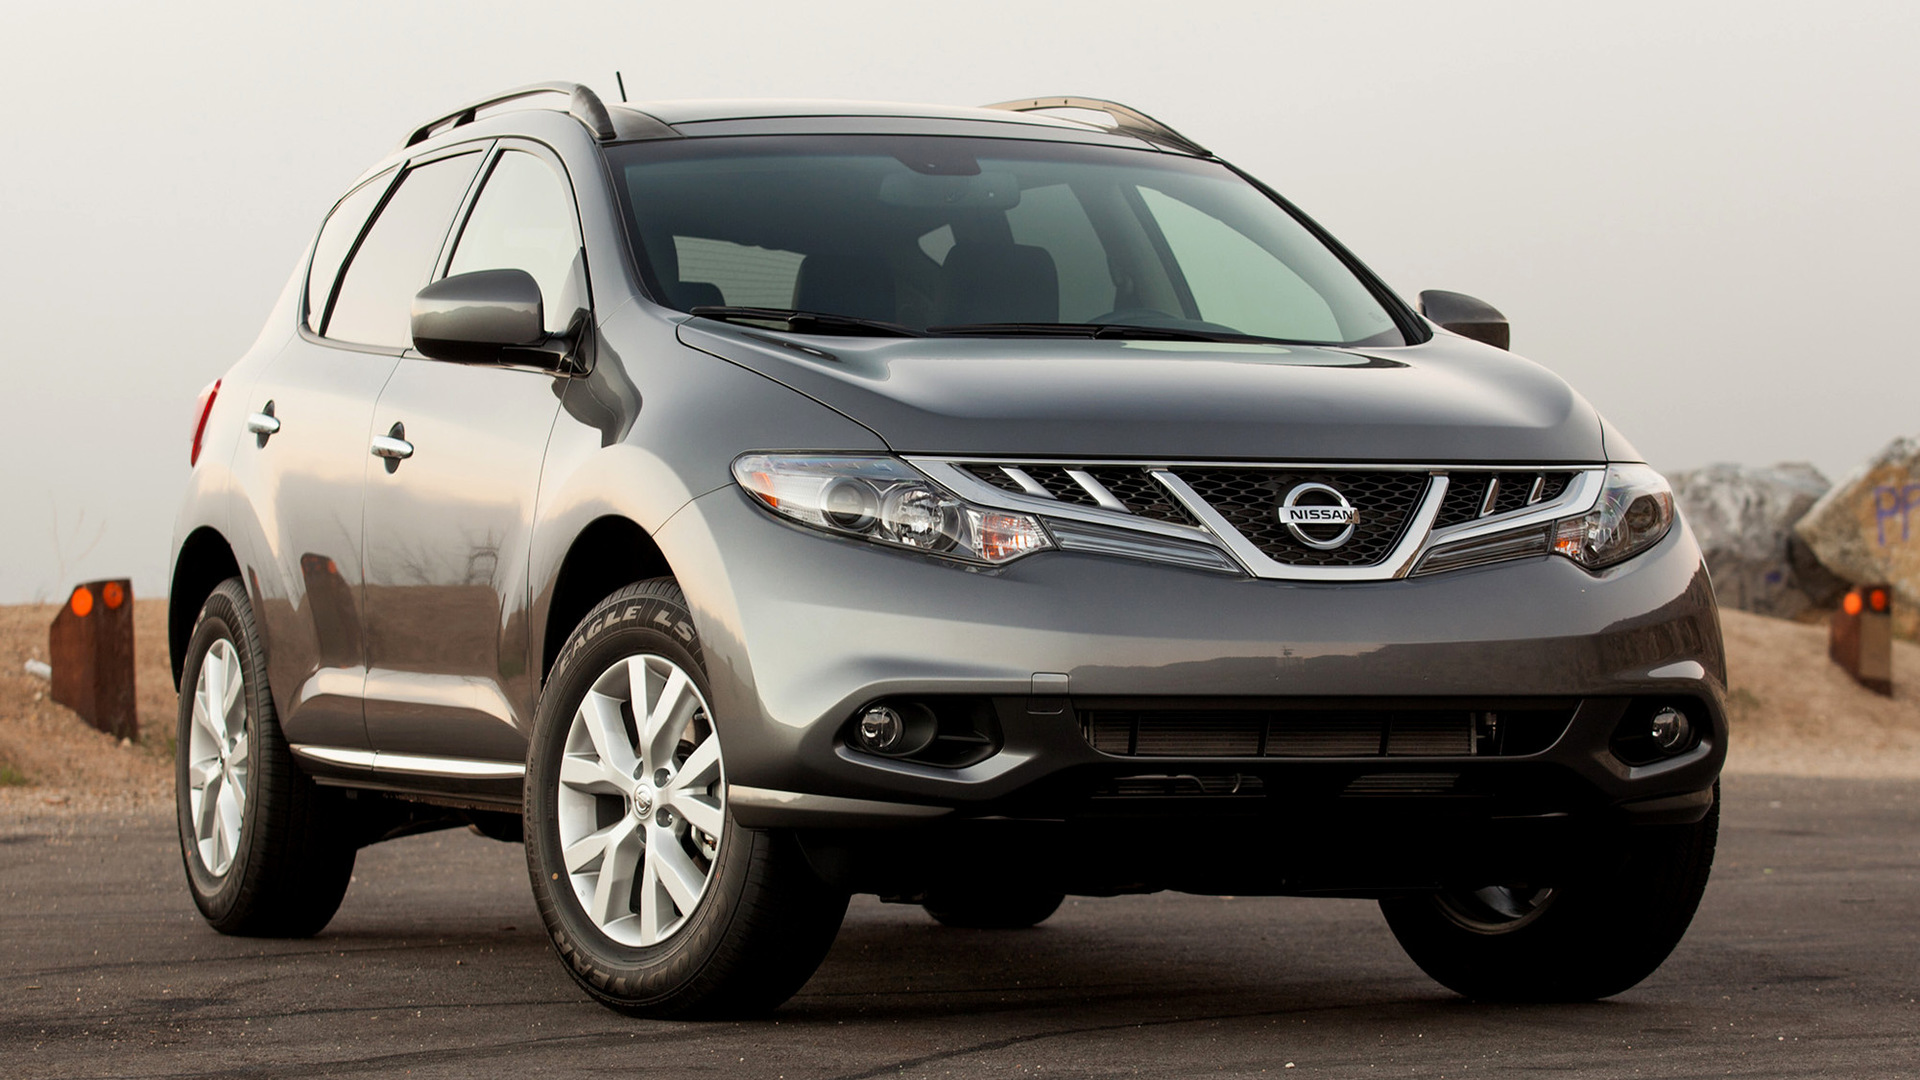 2011 Nissan Murano US   Wallpapers and HD Images Car Pixel 1920x1080